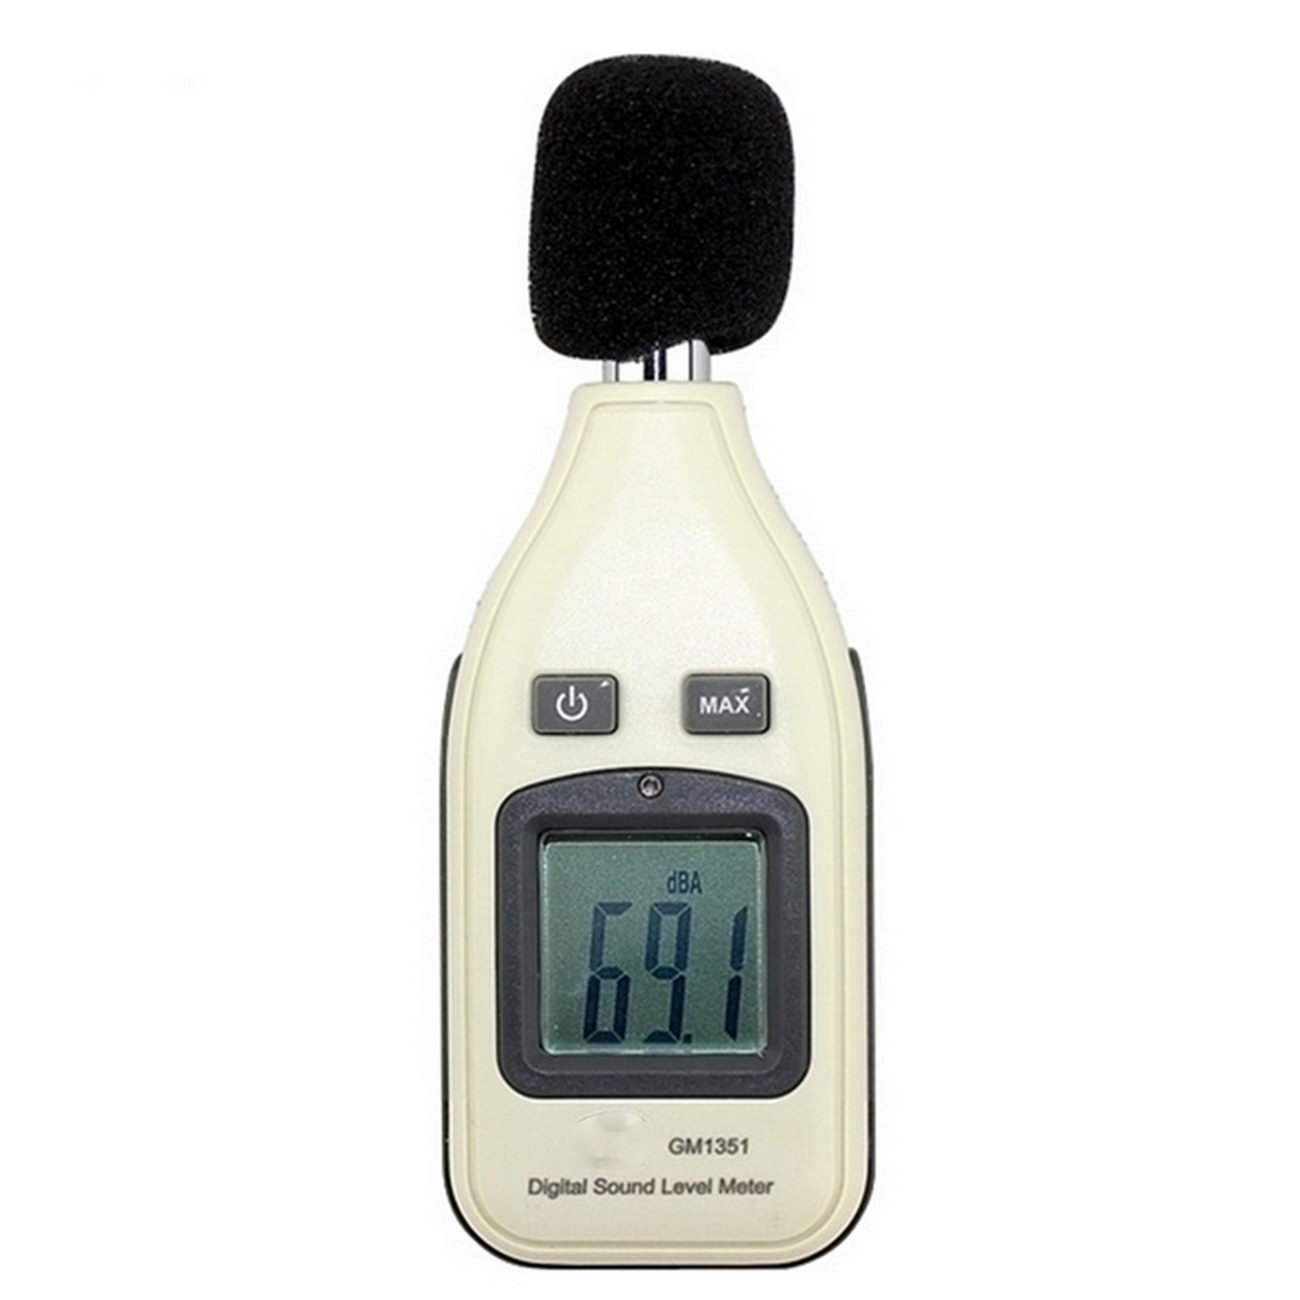 jii2030shann test the sound volume test tester noise meter sound level meter gm1351 sound tester , test sound test device, voice test, test tester, tester, noise meter tester